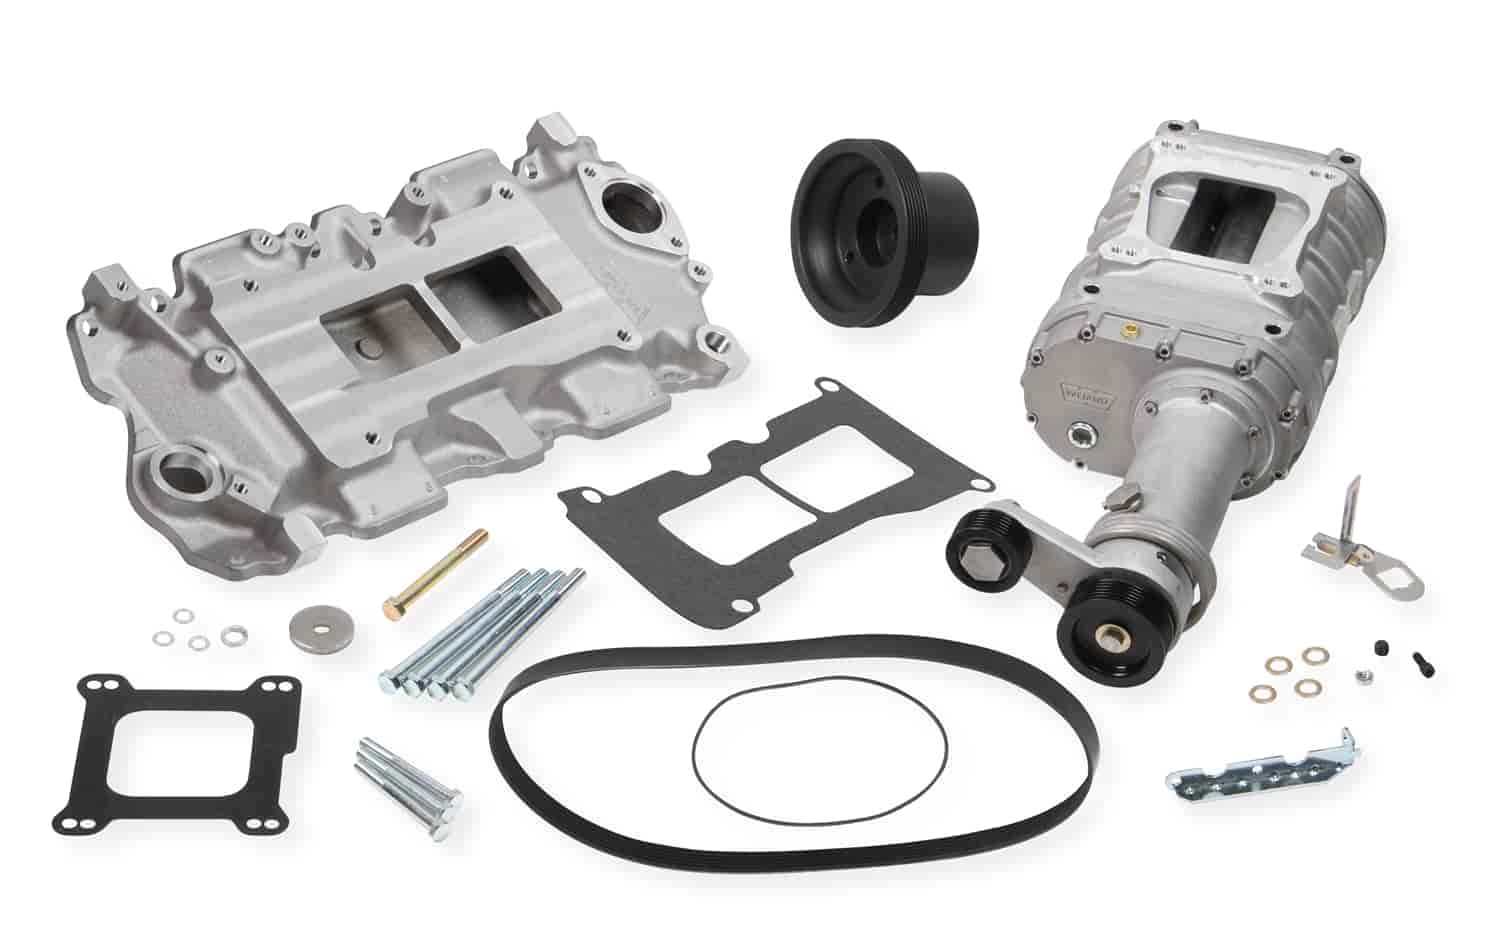 Weiand 6500-1 - Weiand 142/144 Series Pro-Street Supercharger Kits For Chevy